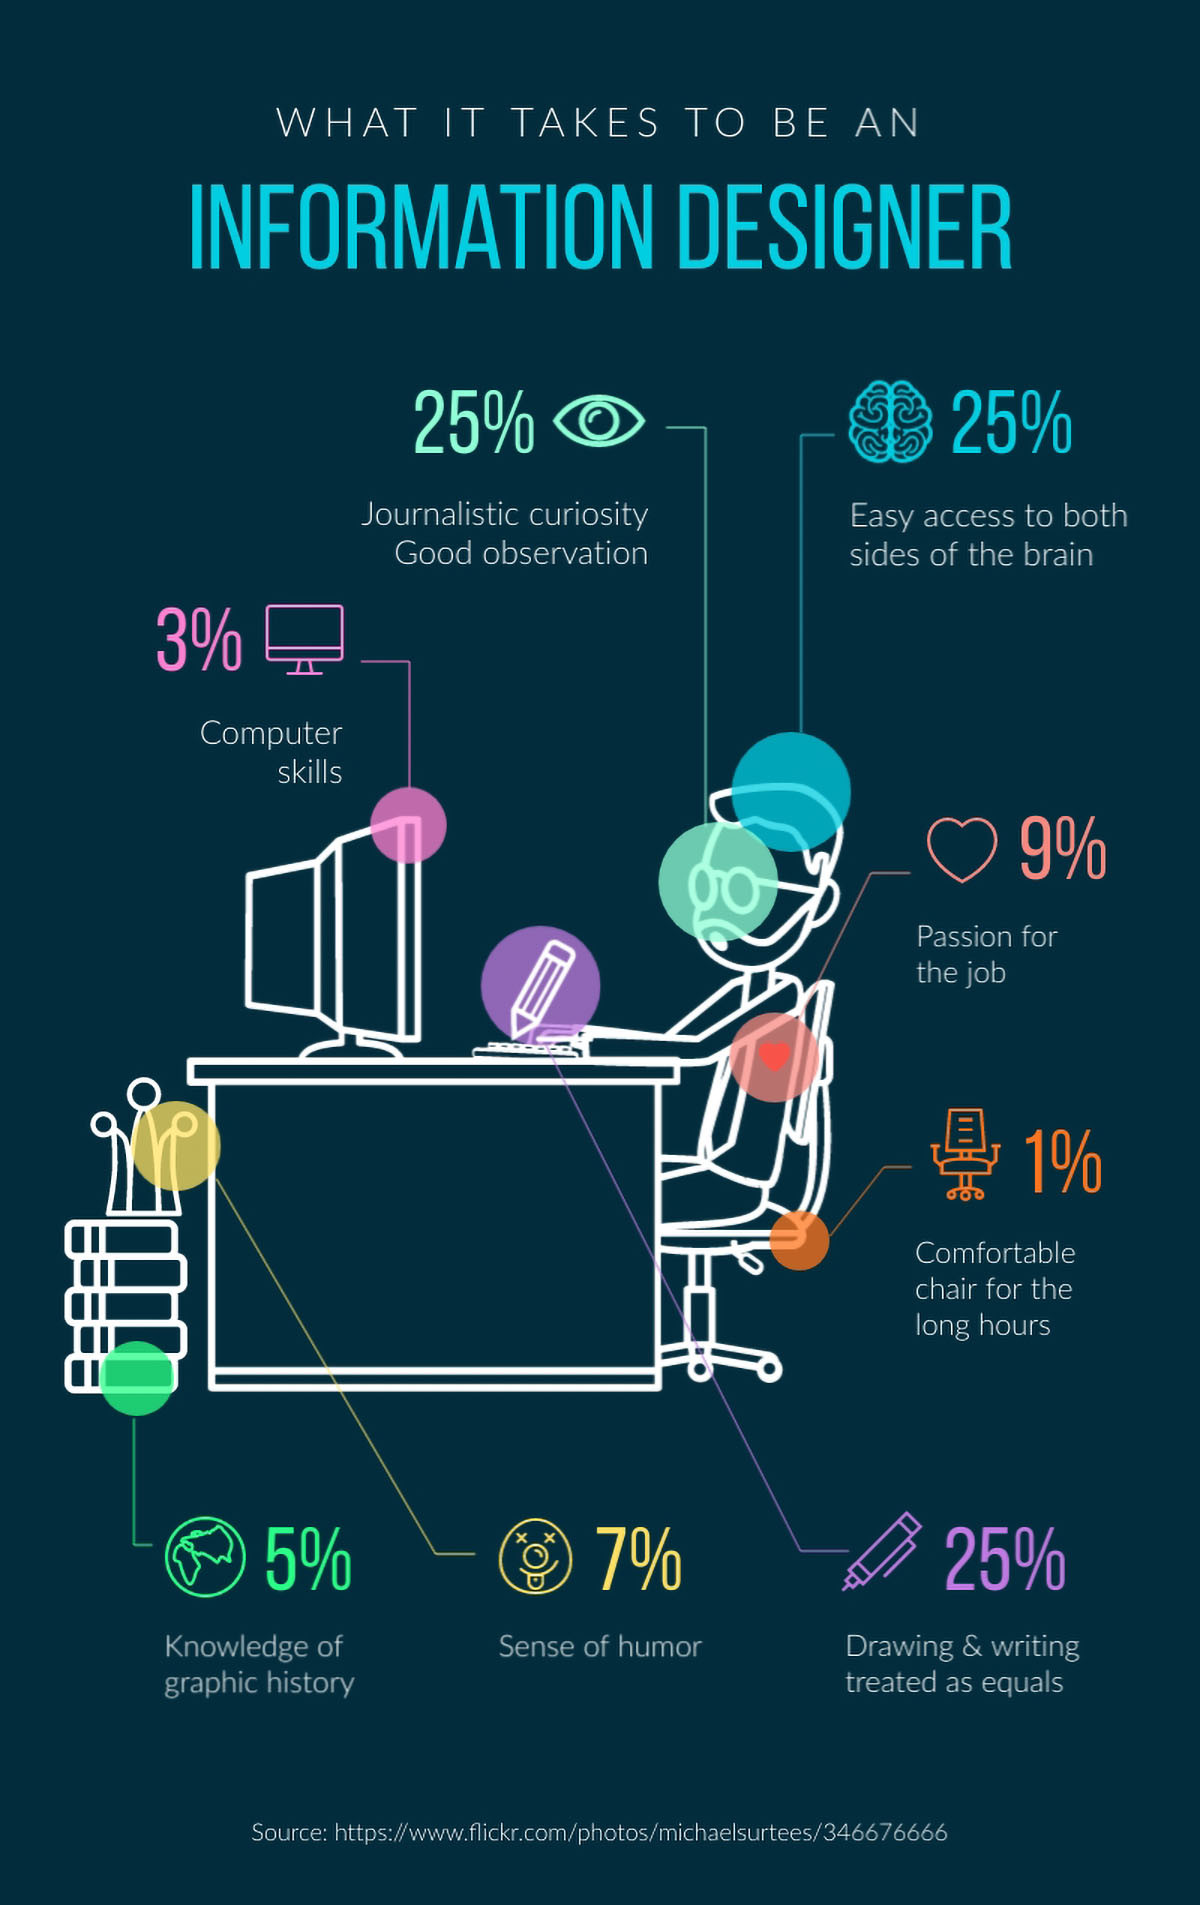 information design - what it takes to be an information designer infographic